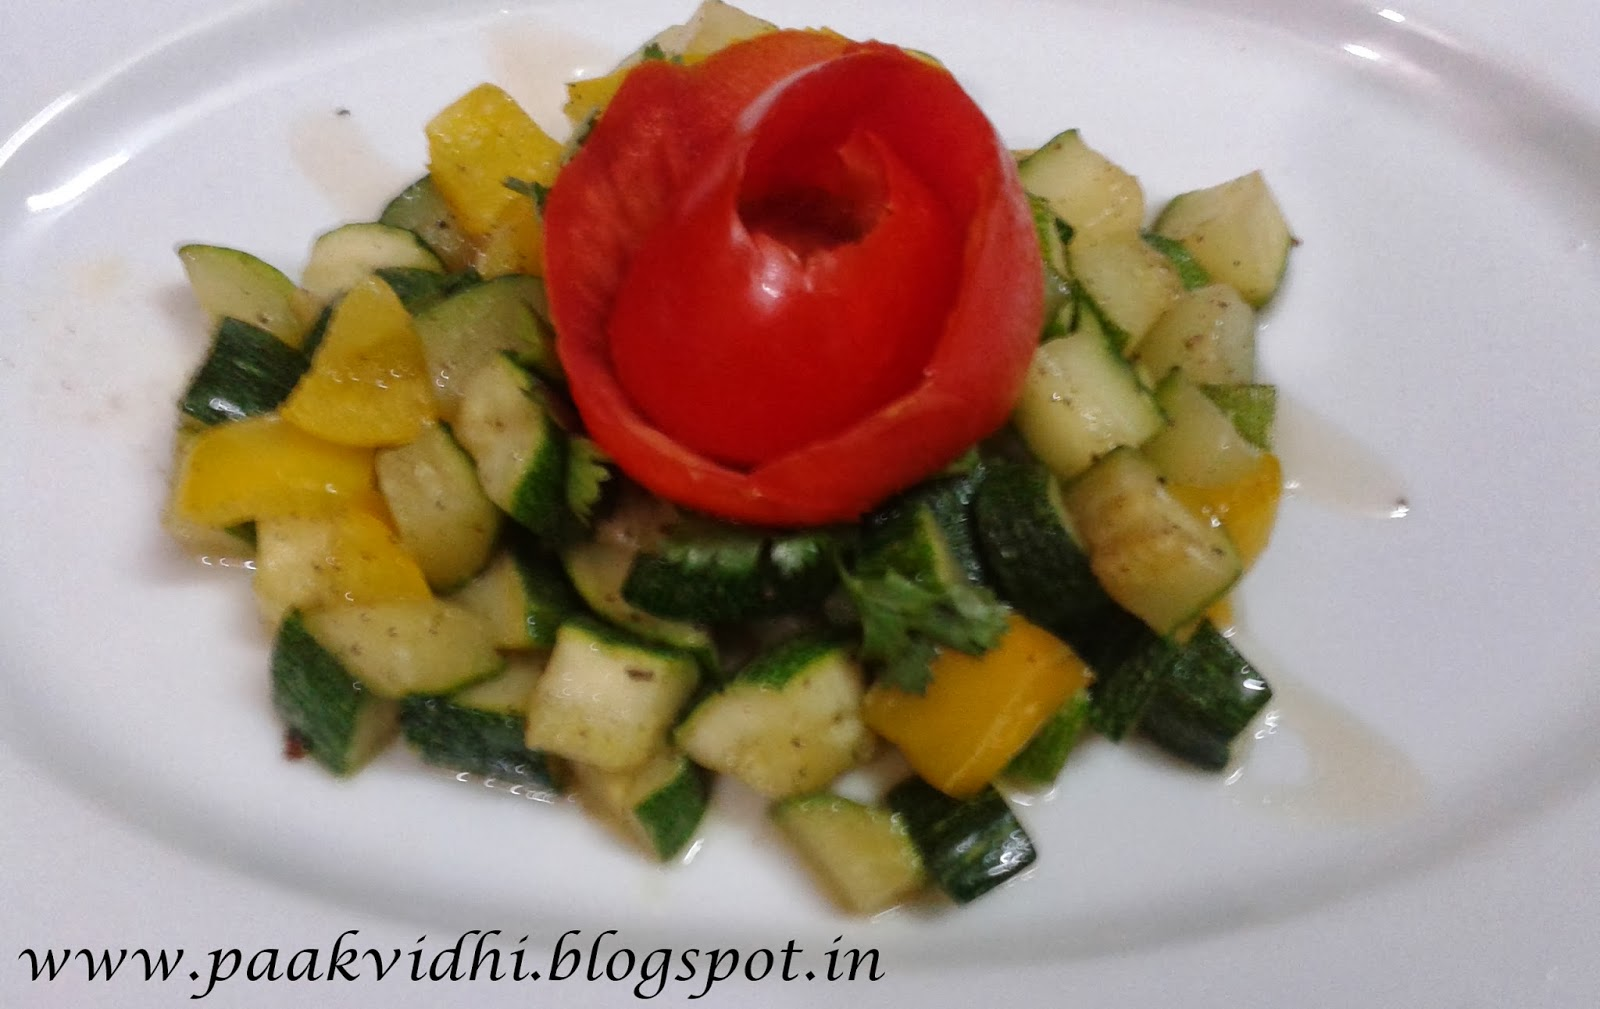 http://paakvidhi.blogspot.in/2014/01/zucchini-bell-pepper-salad.html